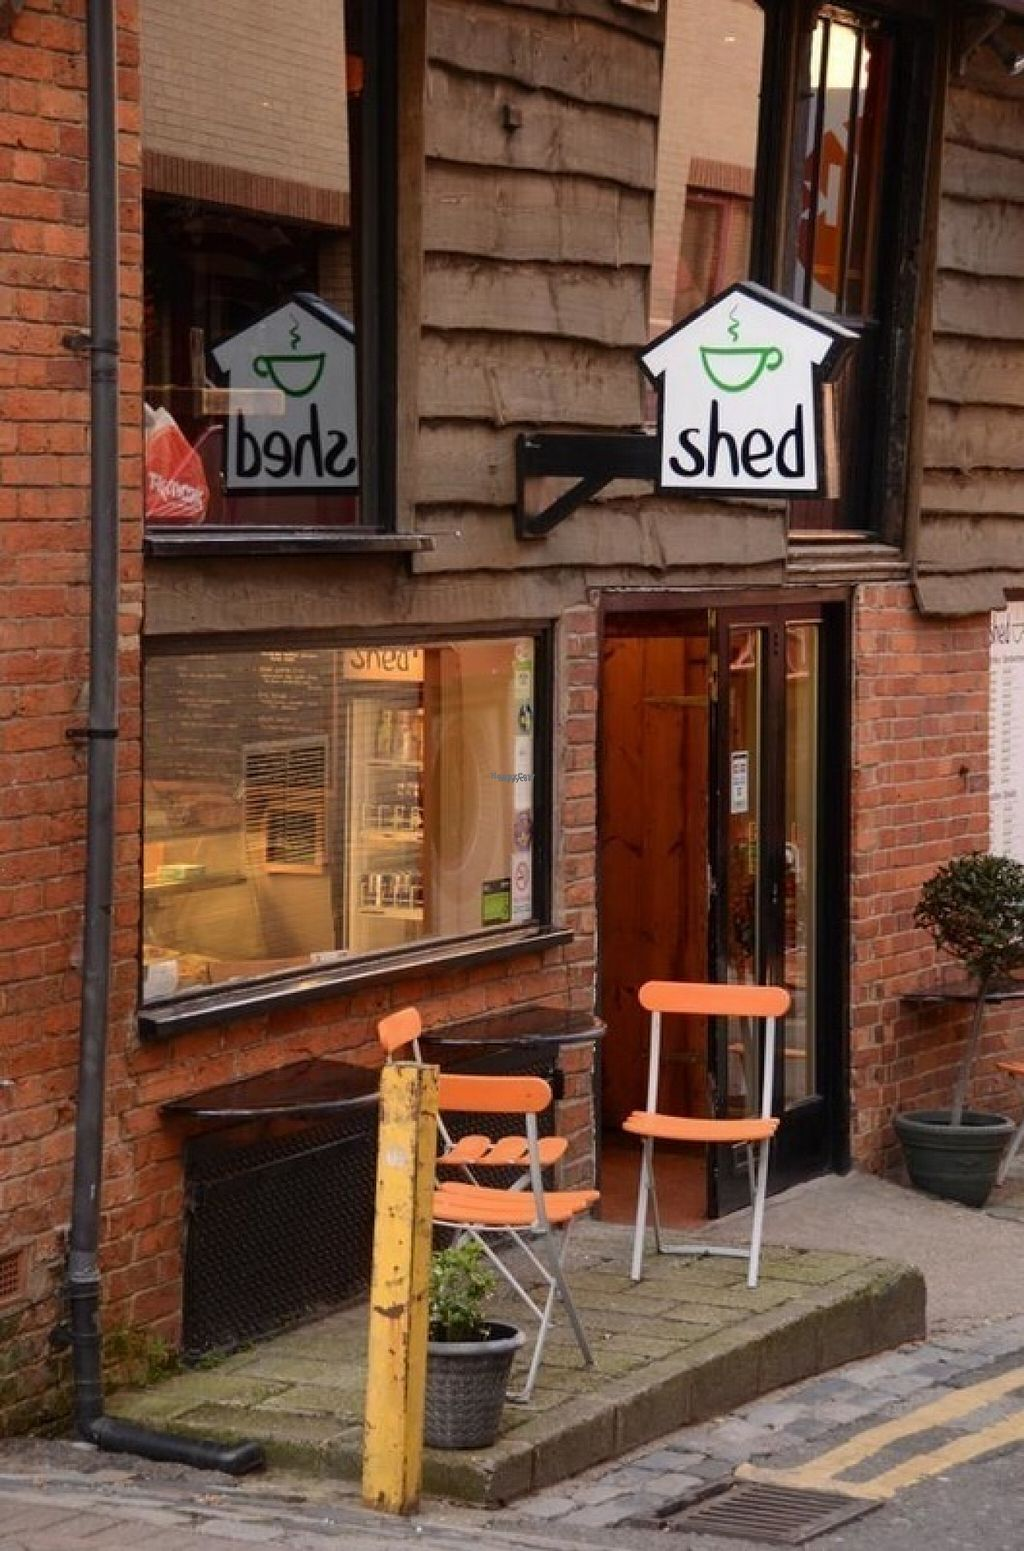 """Photo of Shed  by <a href=""""/members/profile/Meaks"""">Meaks</a> <br/>Shed <br/> August 11, 2016  - <a href='/contact/abuse/image/73363/167751'>Report</a>"""